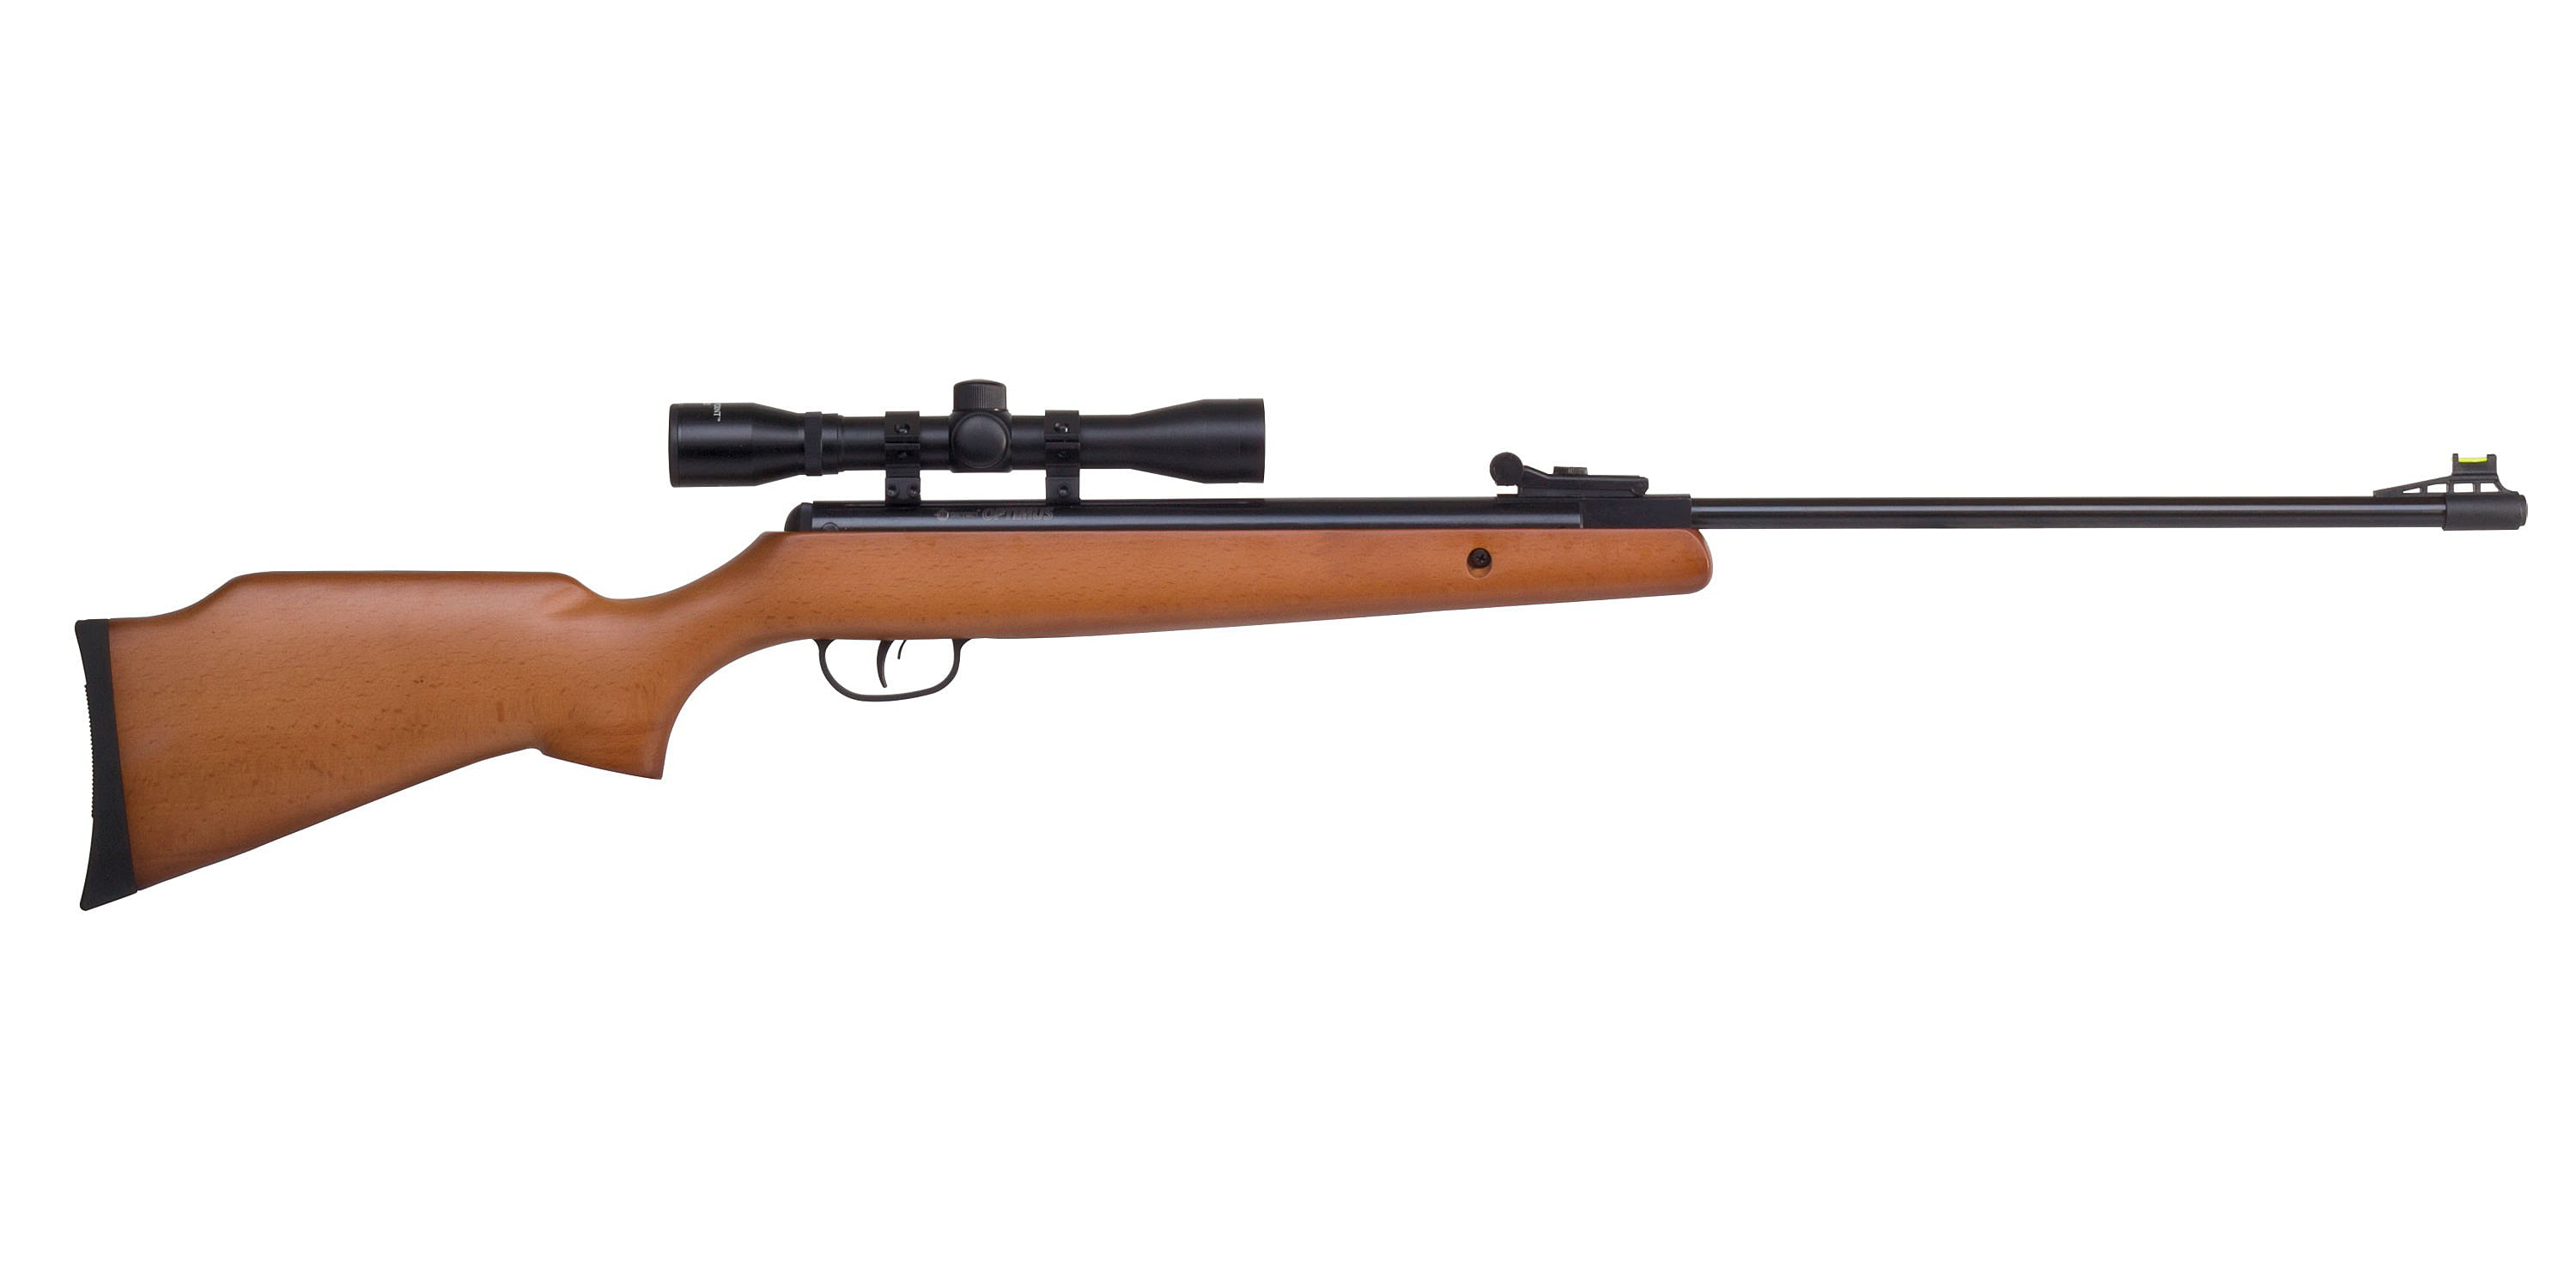 Crosman Optimus .177 Caliber Break Barrel Air Rifle With Scope by Crosman